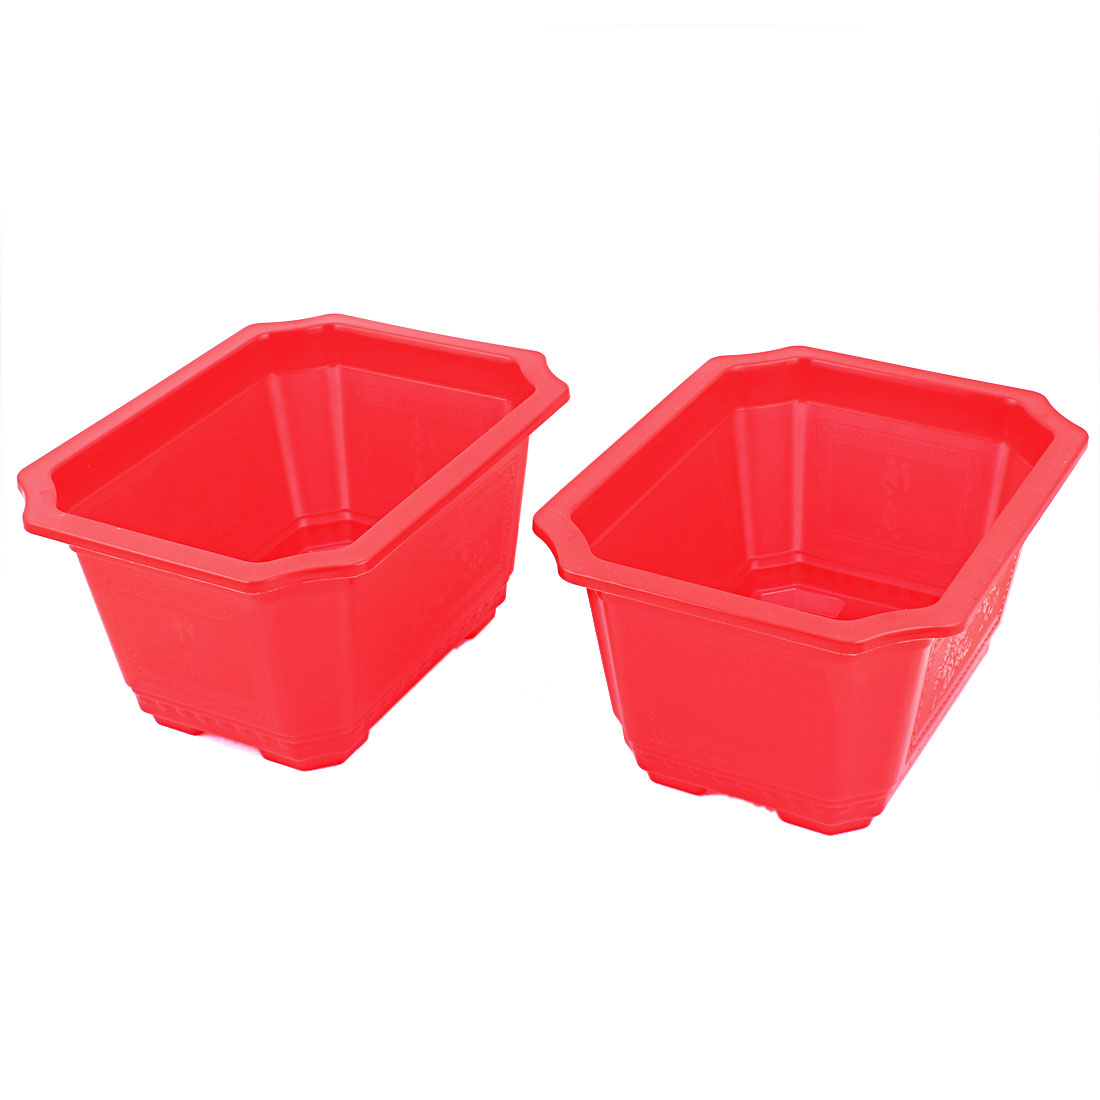 Plastic Rectangle Shaped Home Garden Window Decor Plant Flower Pot Red 2pcs